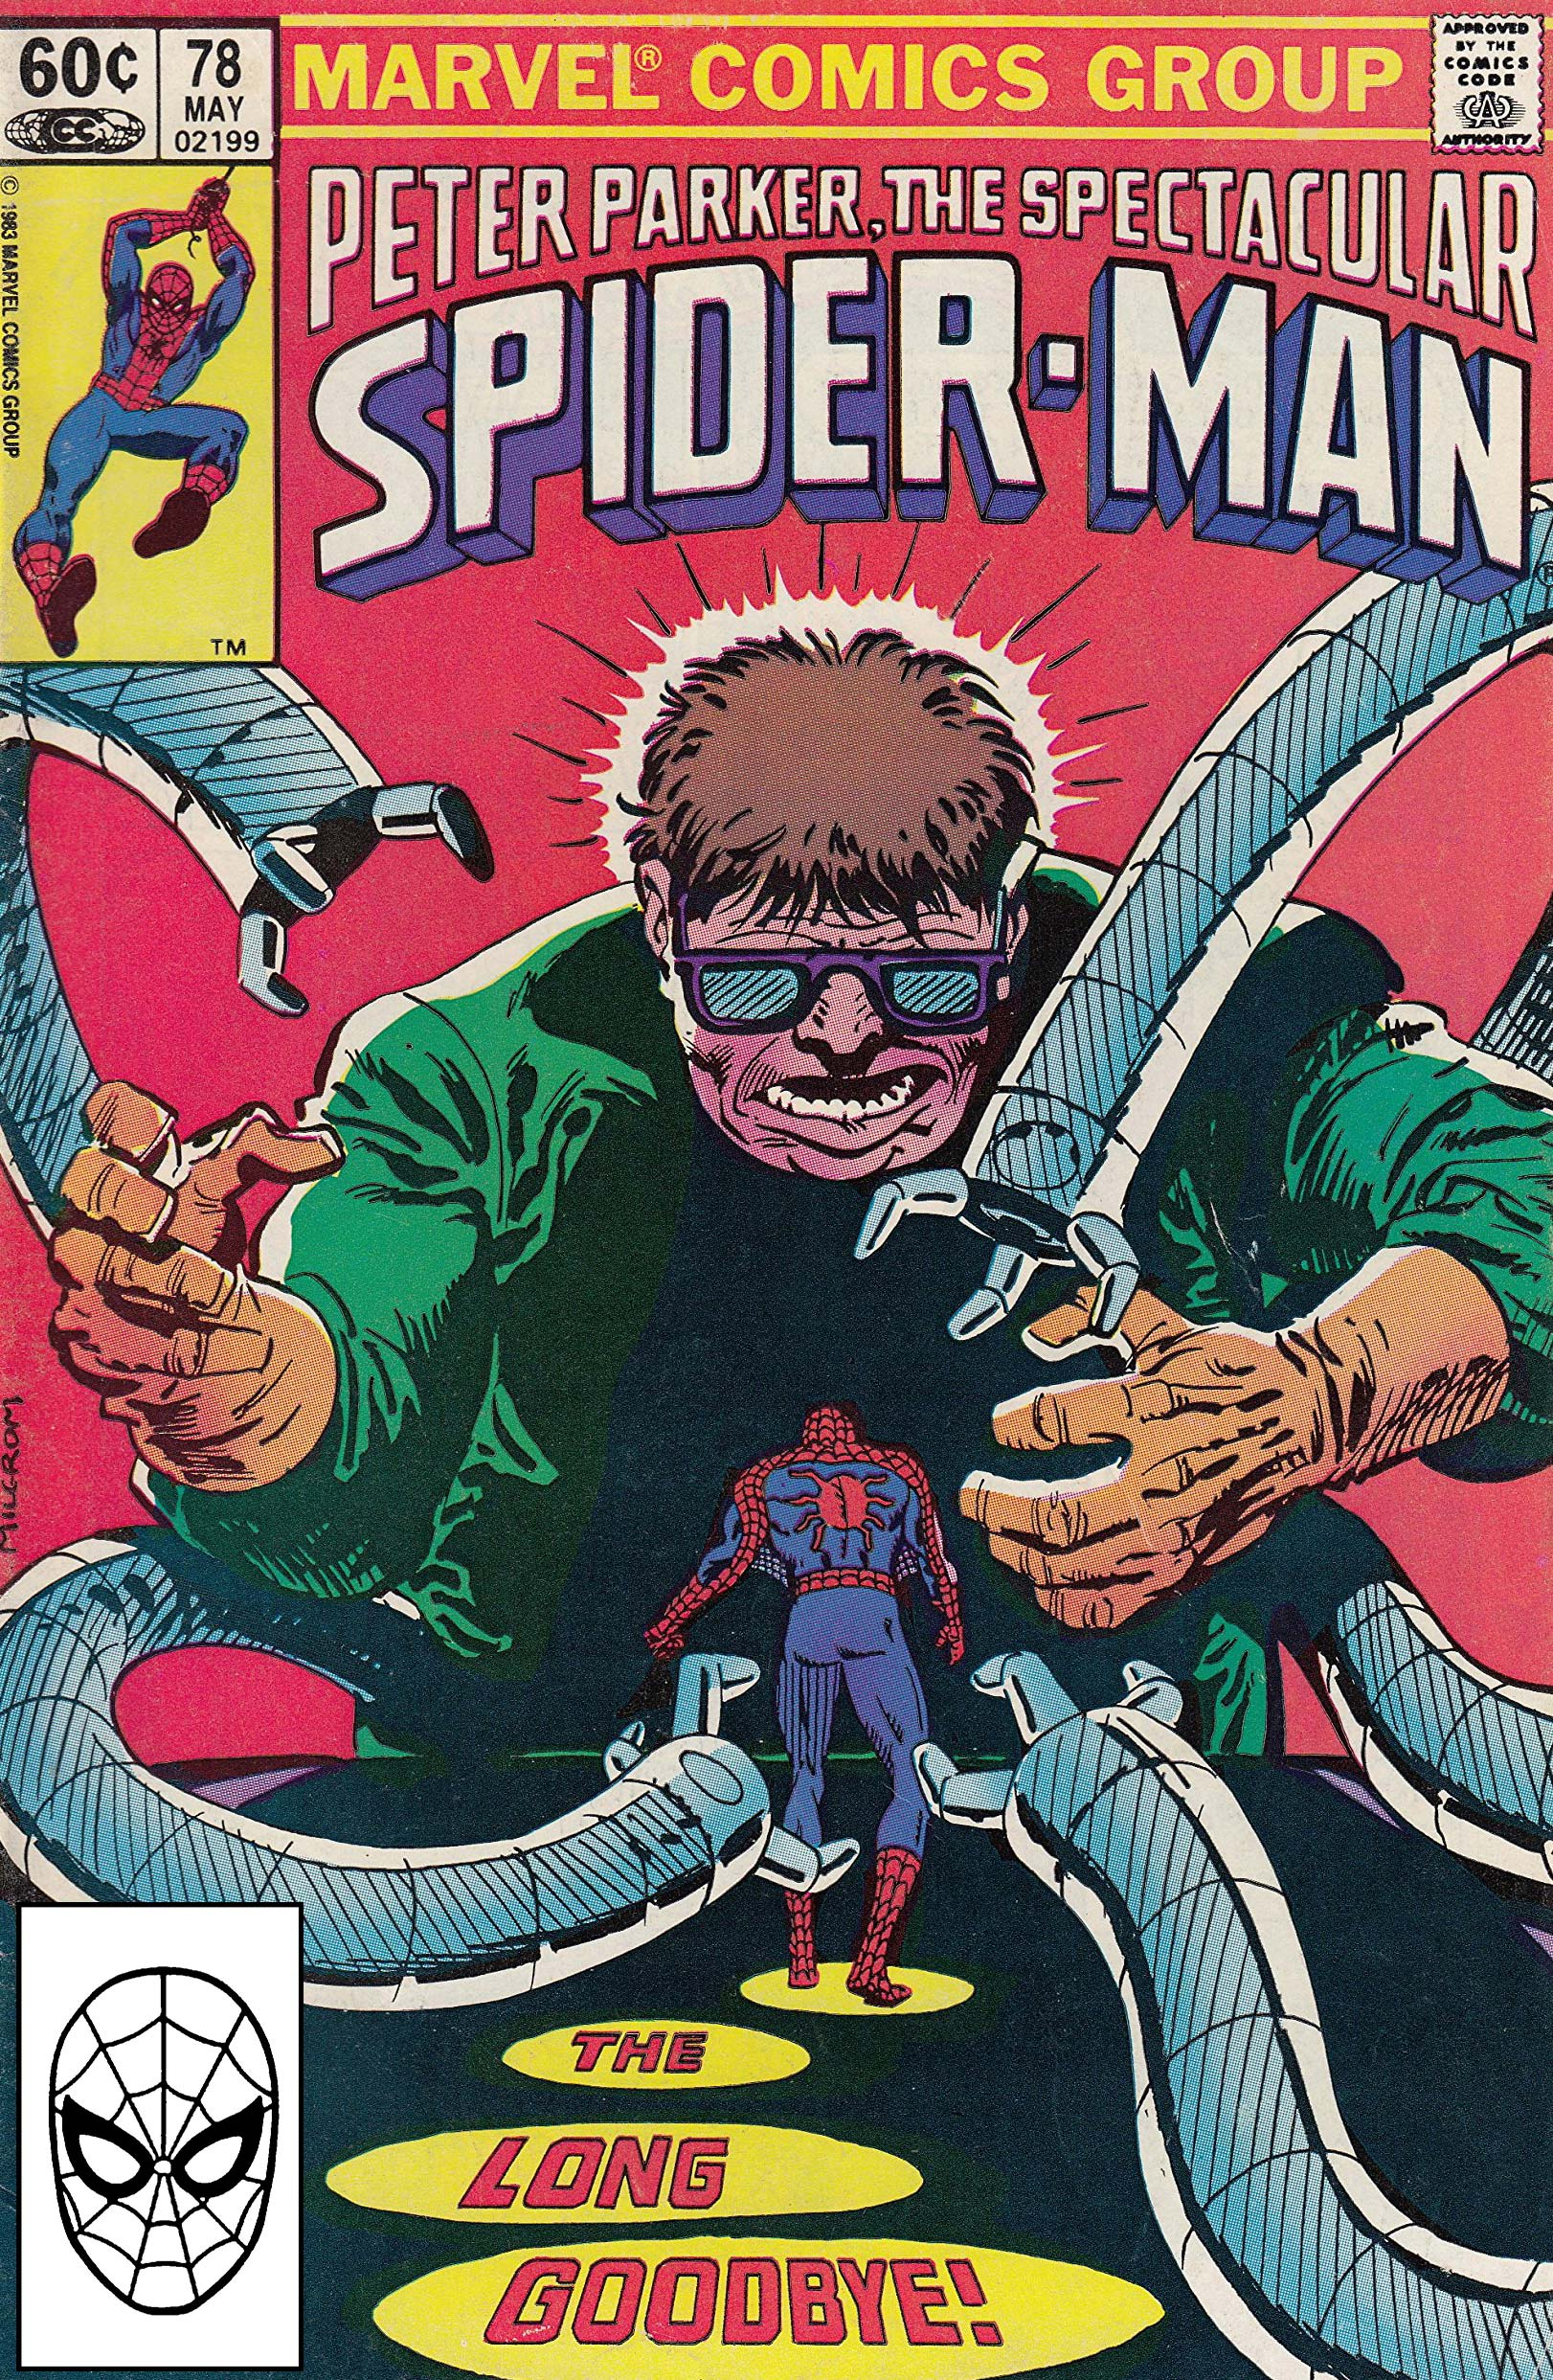 Peter Parker, the Spectacular Spider-Man (1976) #78